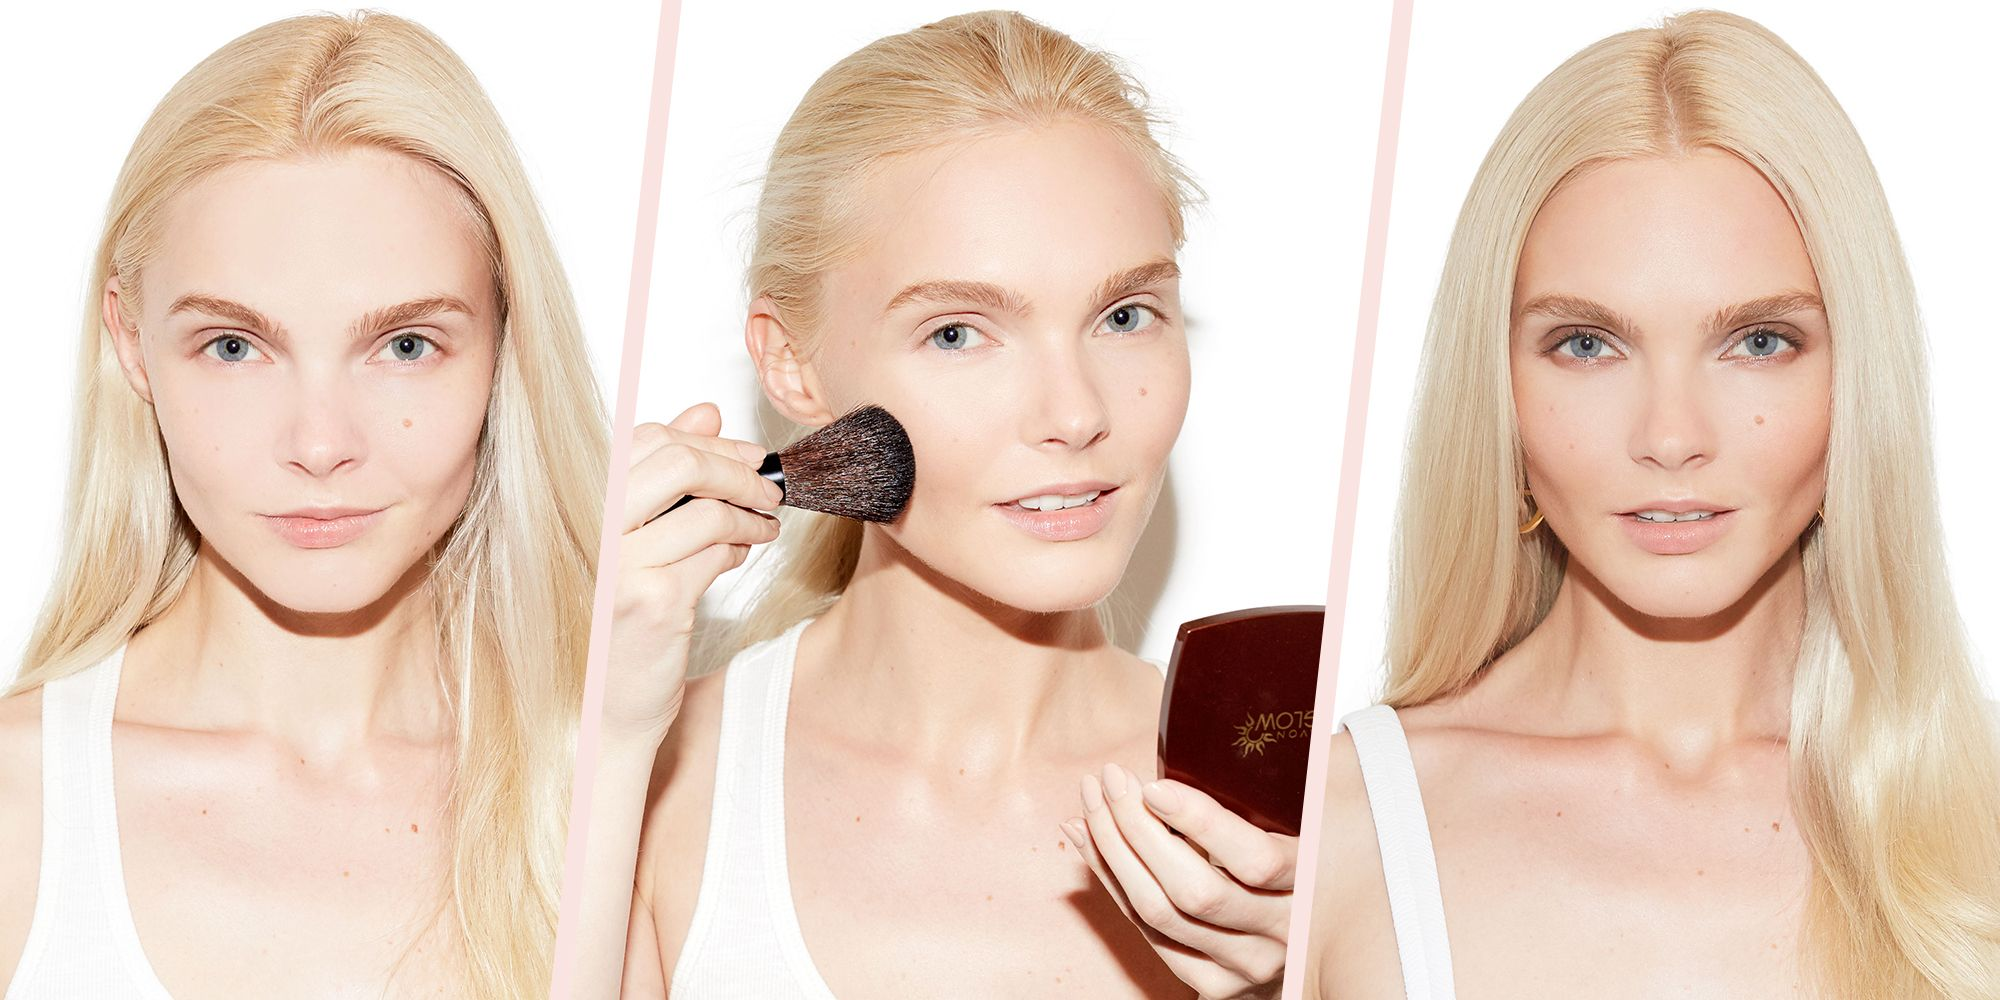 How To Apply Bronzer 5 Steps To Getting A Naturallooking Tan Without  Stepping Foot In The Sun 5 Steps To